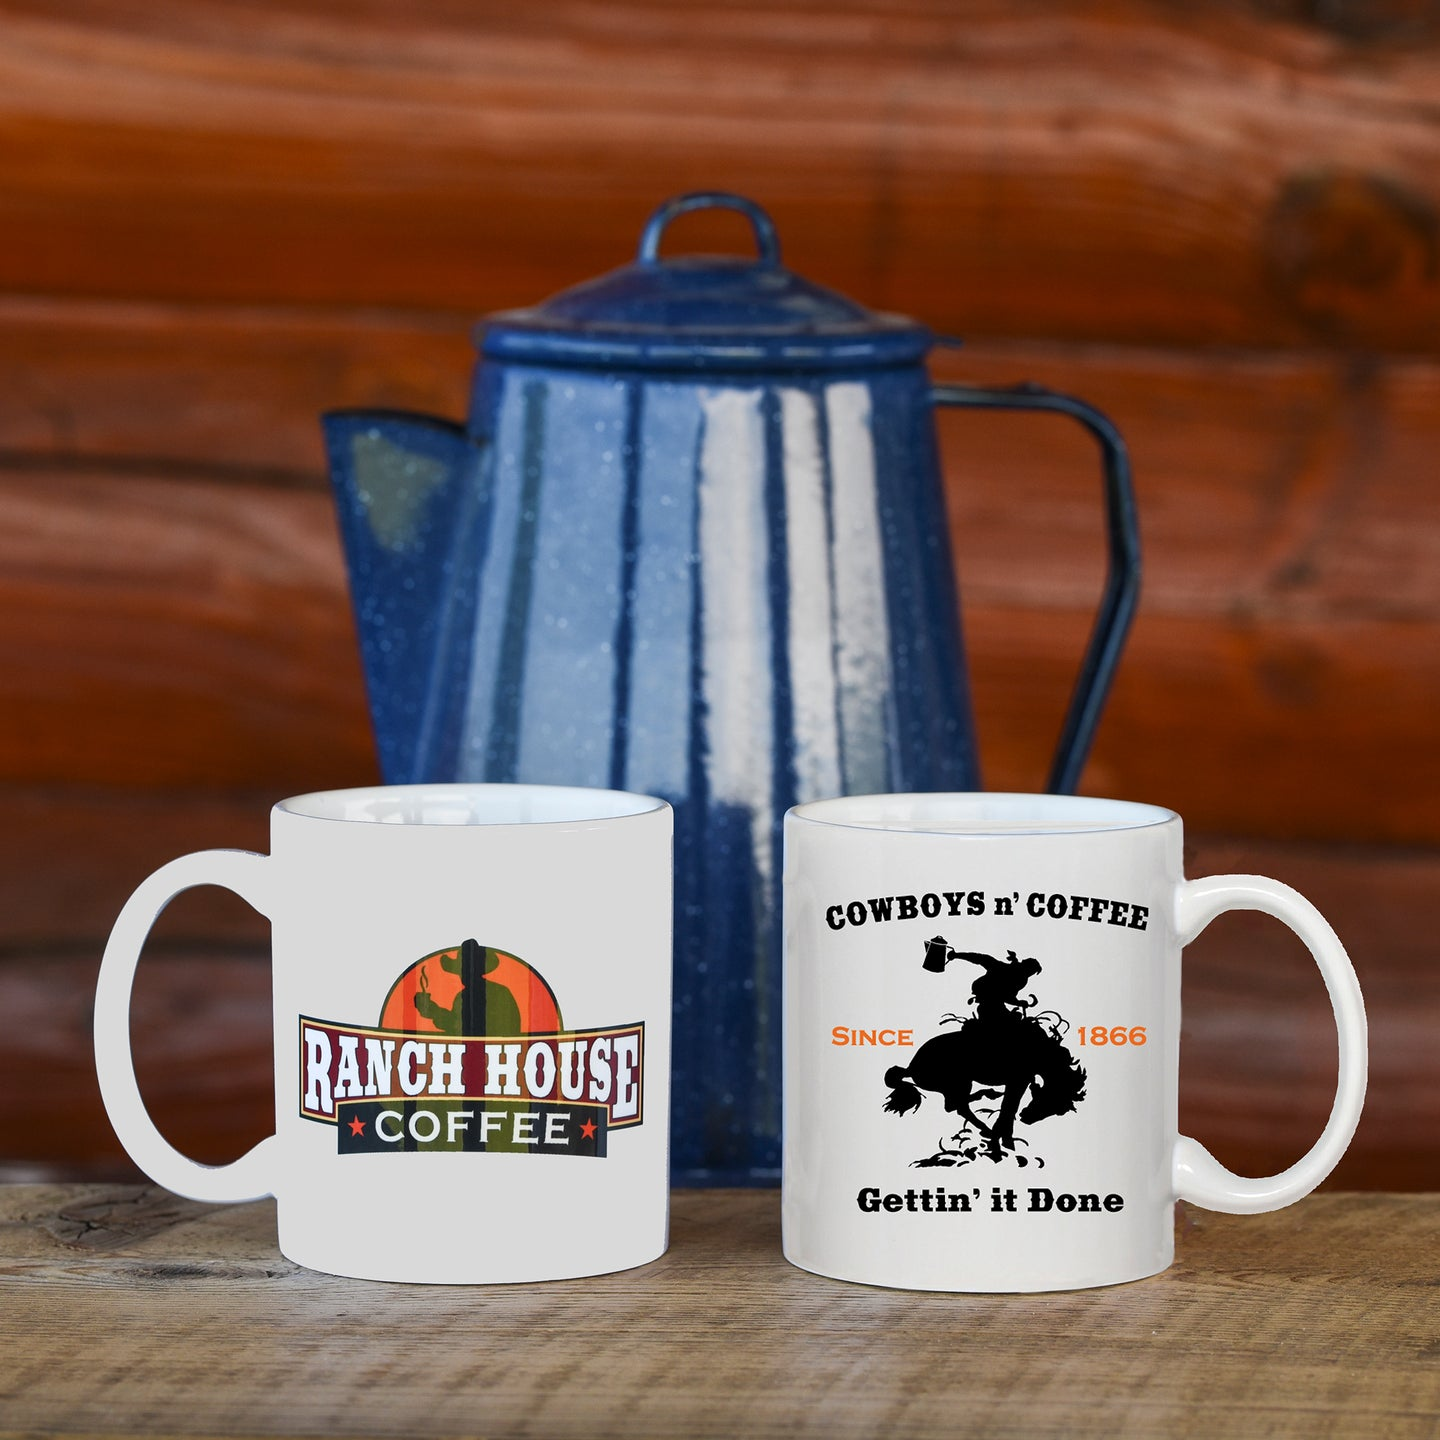 Ranch House Coffee Mug